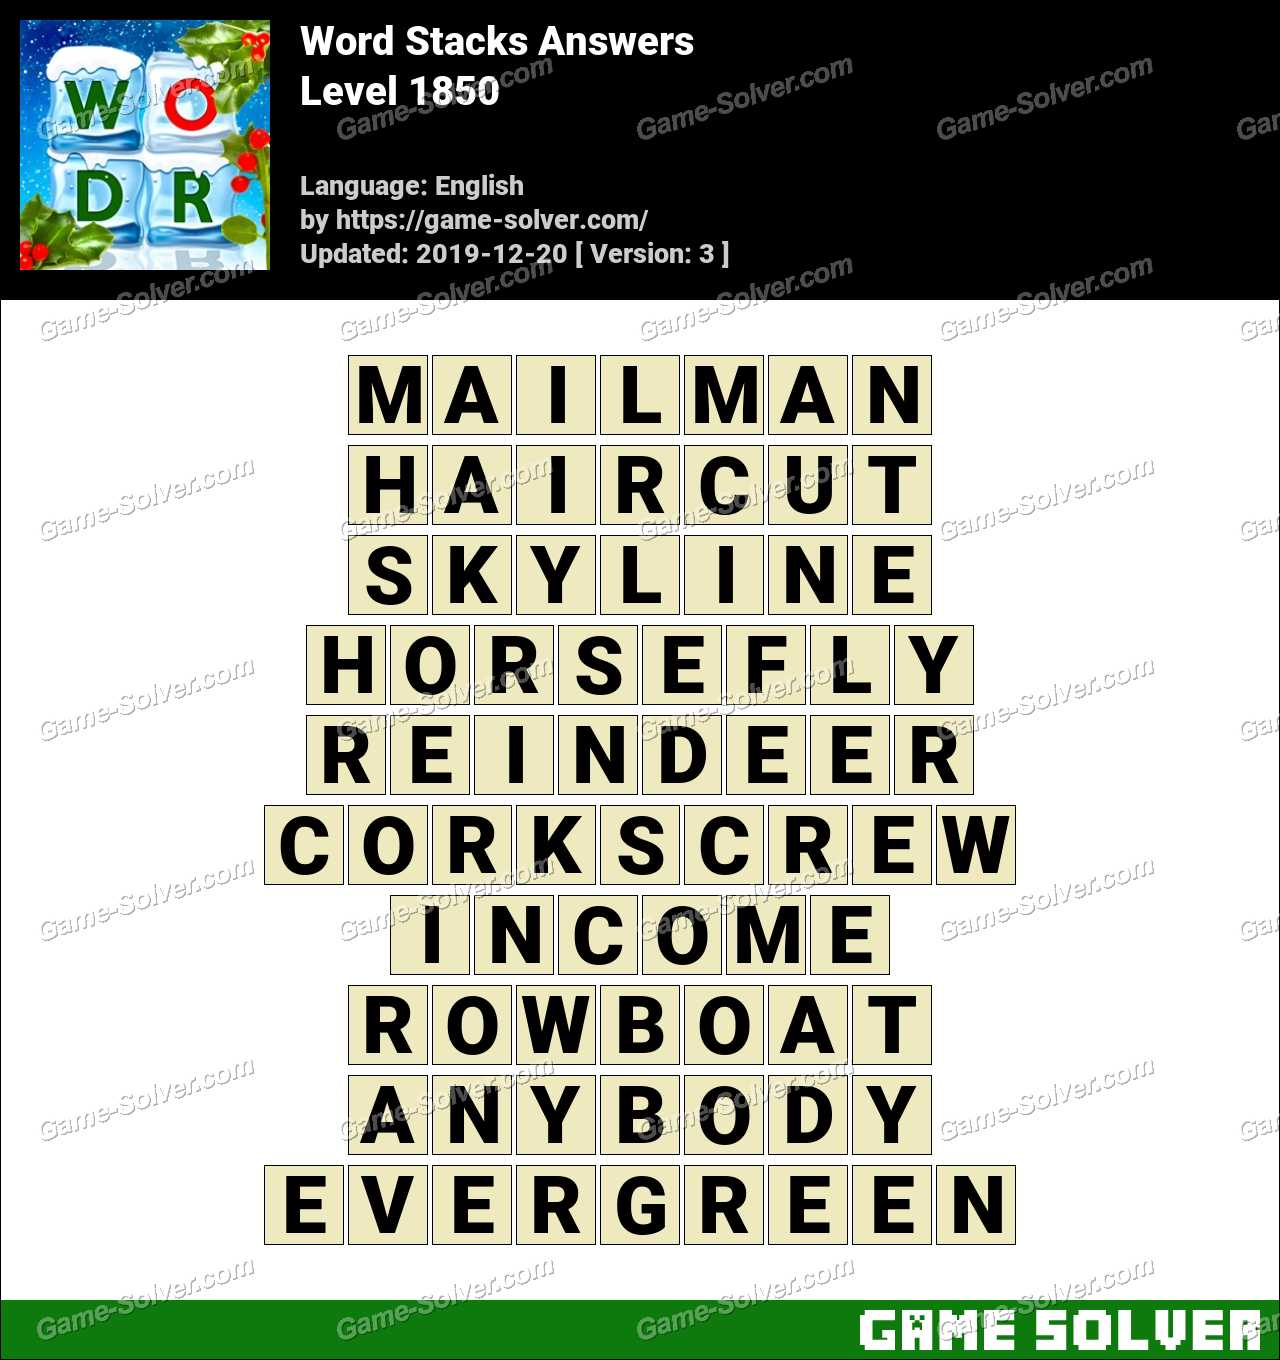 Word Stacks Level 1850 Answers